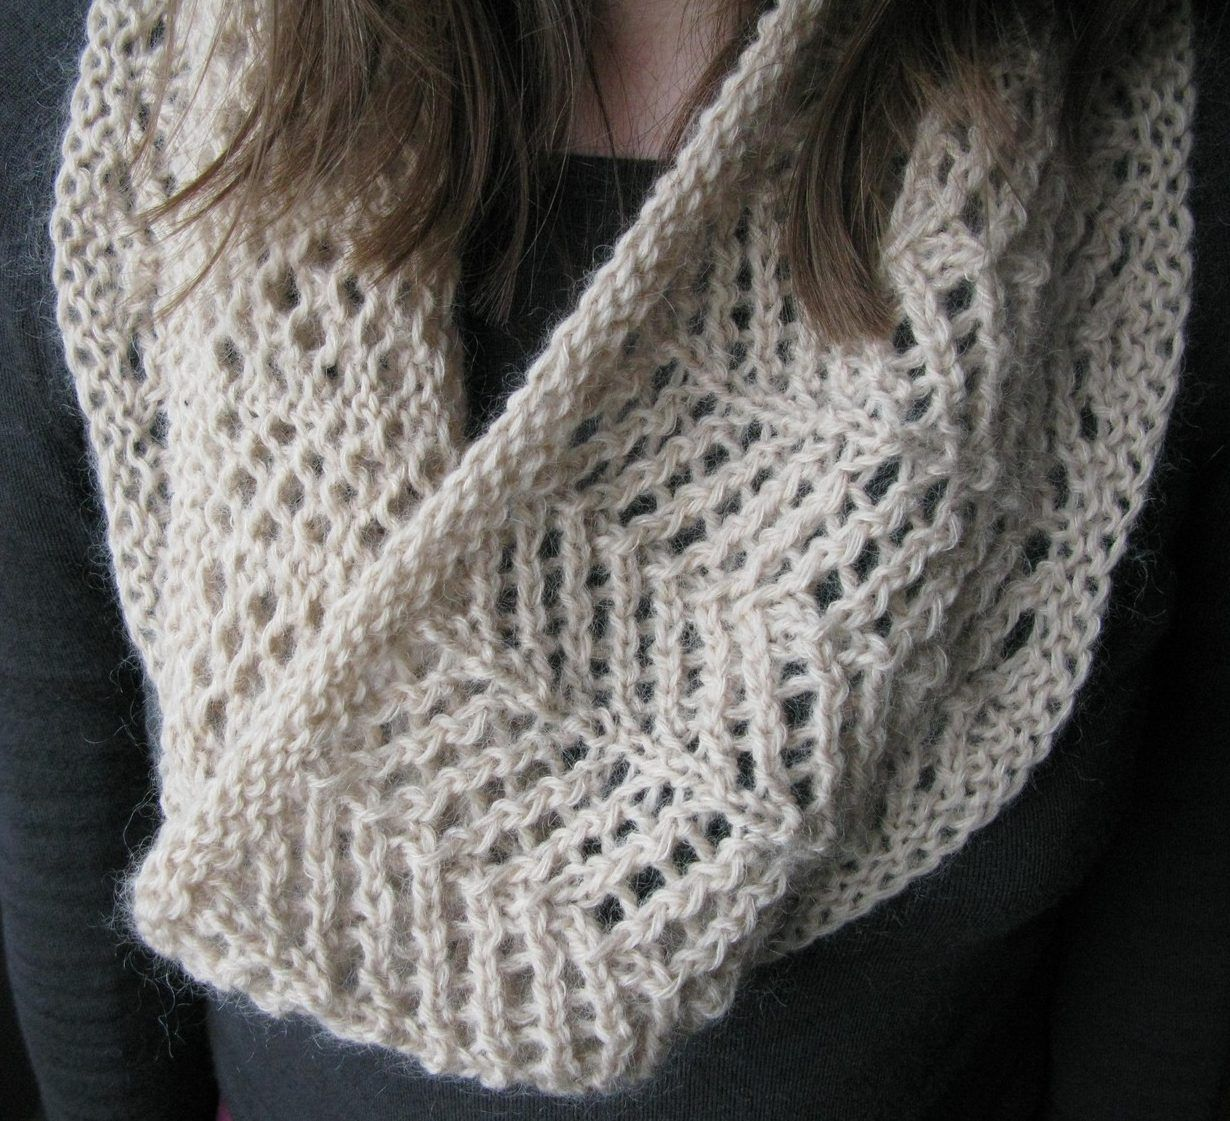 Knitting Pattern for One Skein 4 Row Repeat Cowl - The Avena lace ...